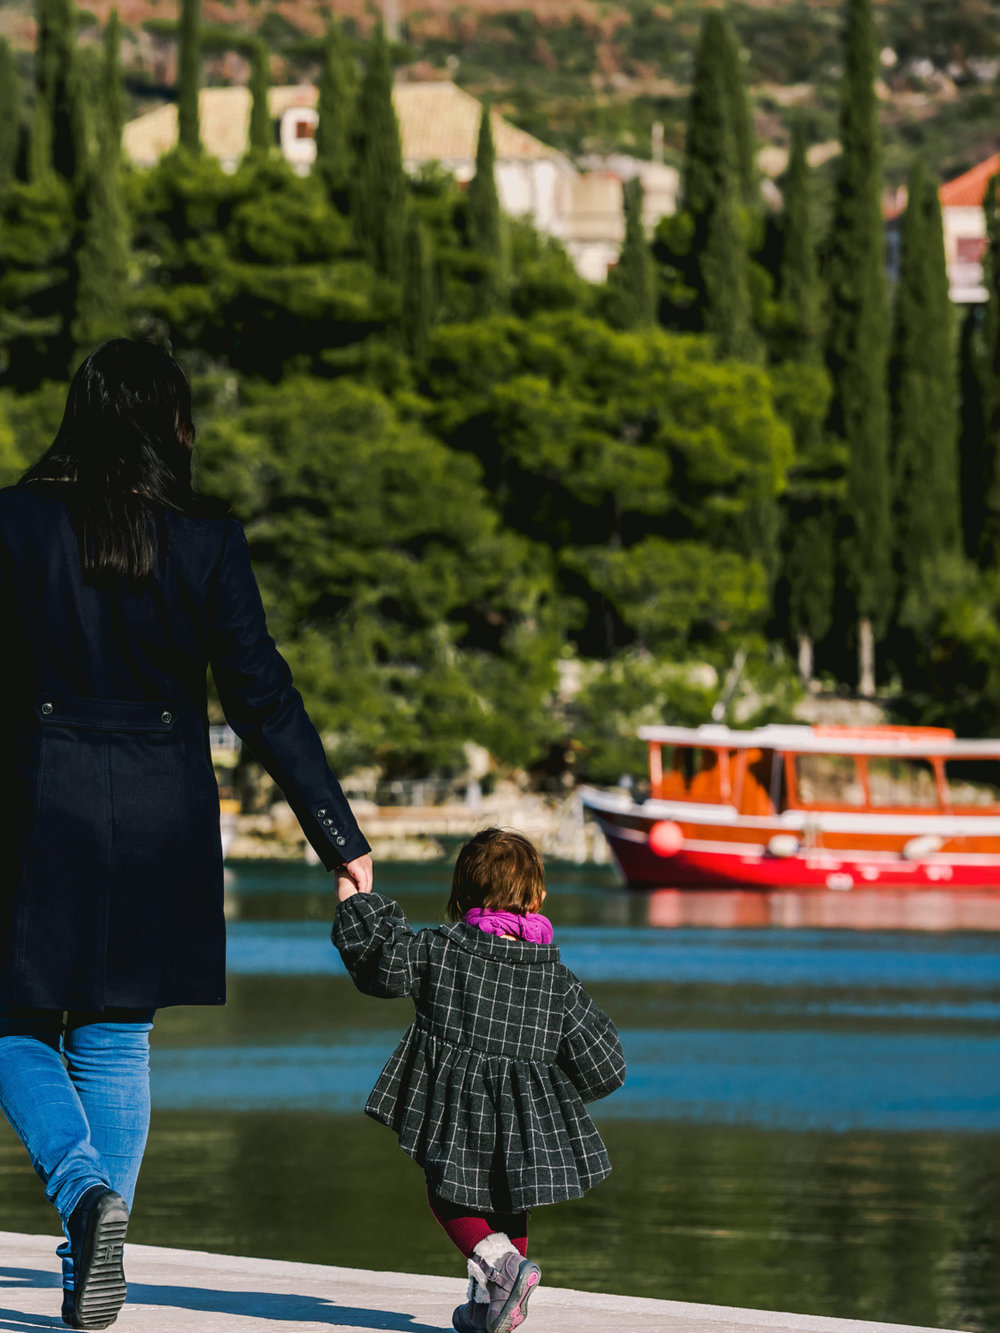 The Cavtat Harbor in Croata is a great place to take some family vacation photos.